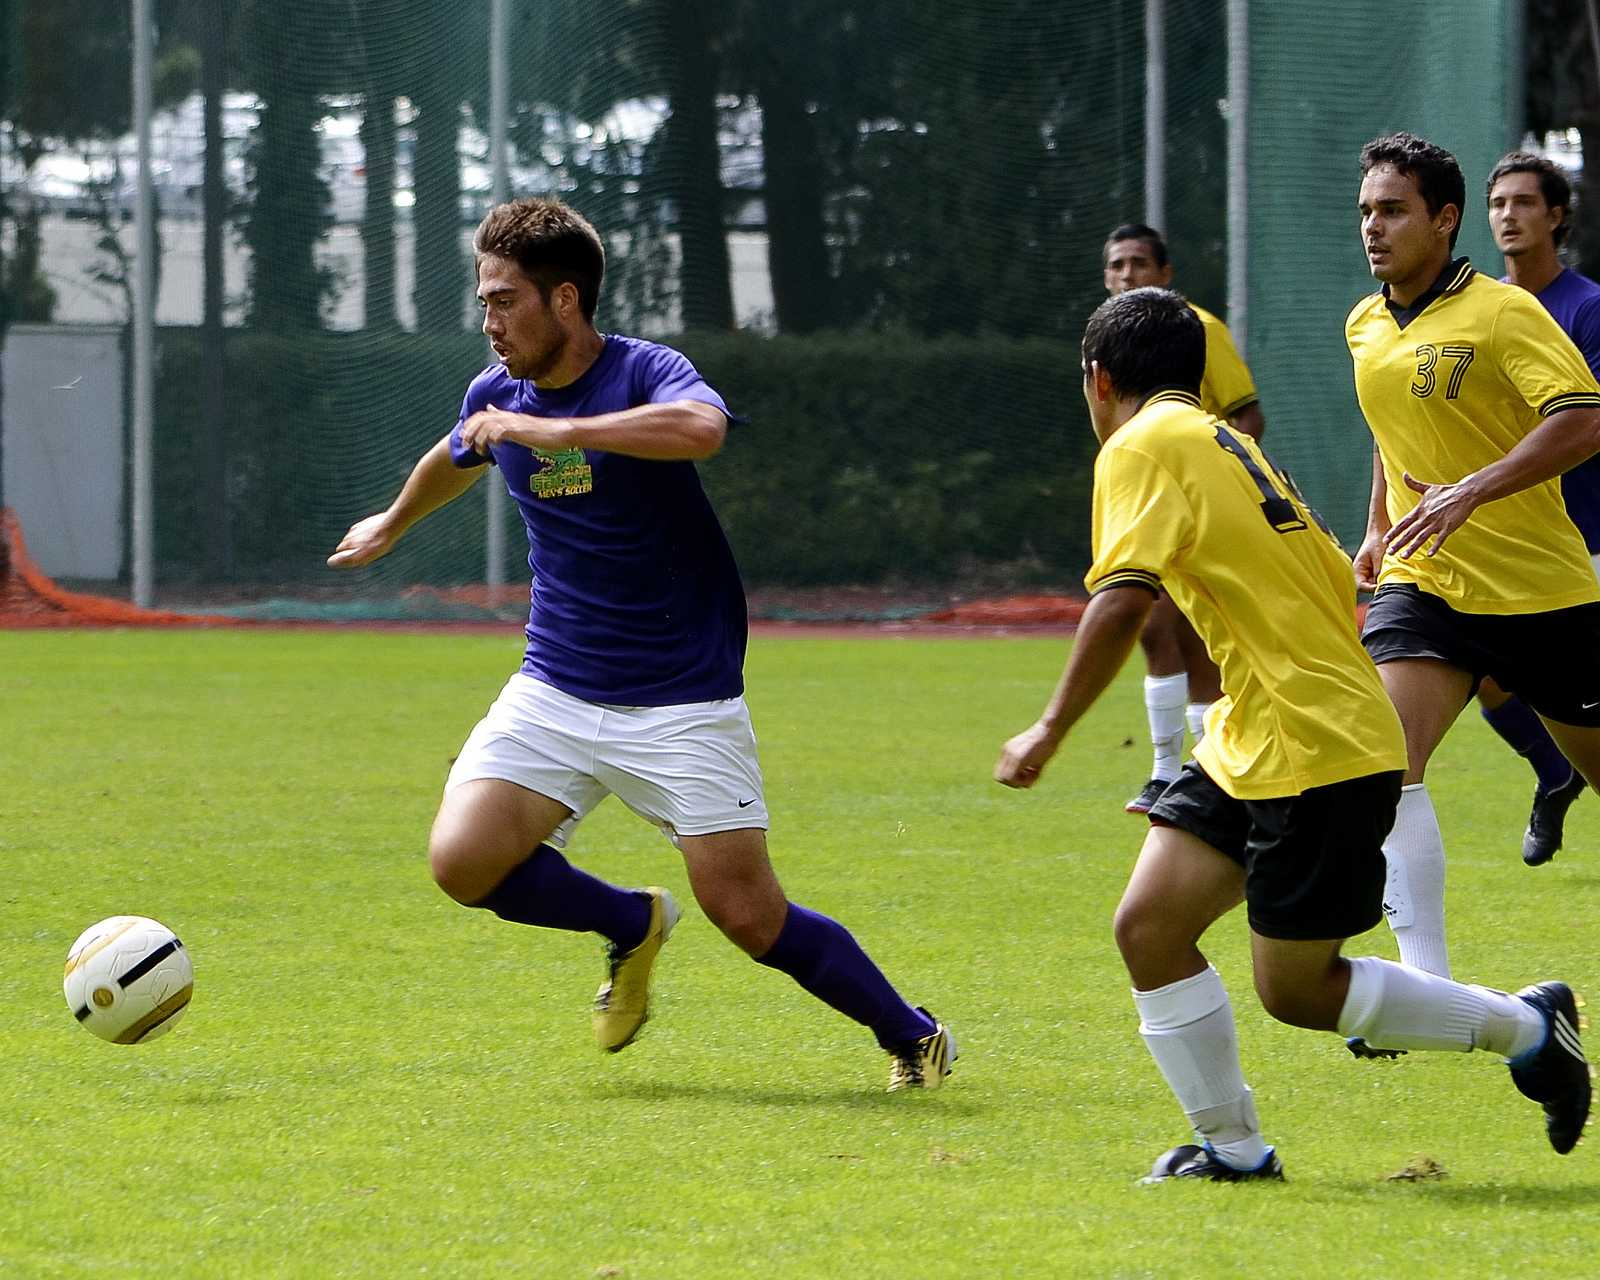 Renan Silva keeps his eyes on the ball during a scrimmage at SF State on Aug. 29  against College of Marin. SF State won the scrimmage. Photo by Amanda Peterson / Xpress